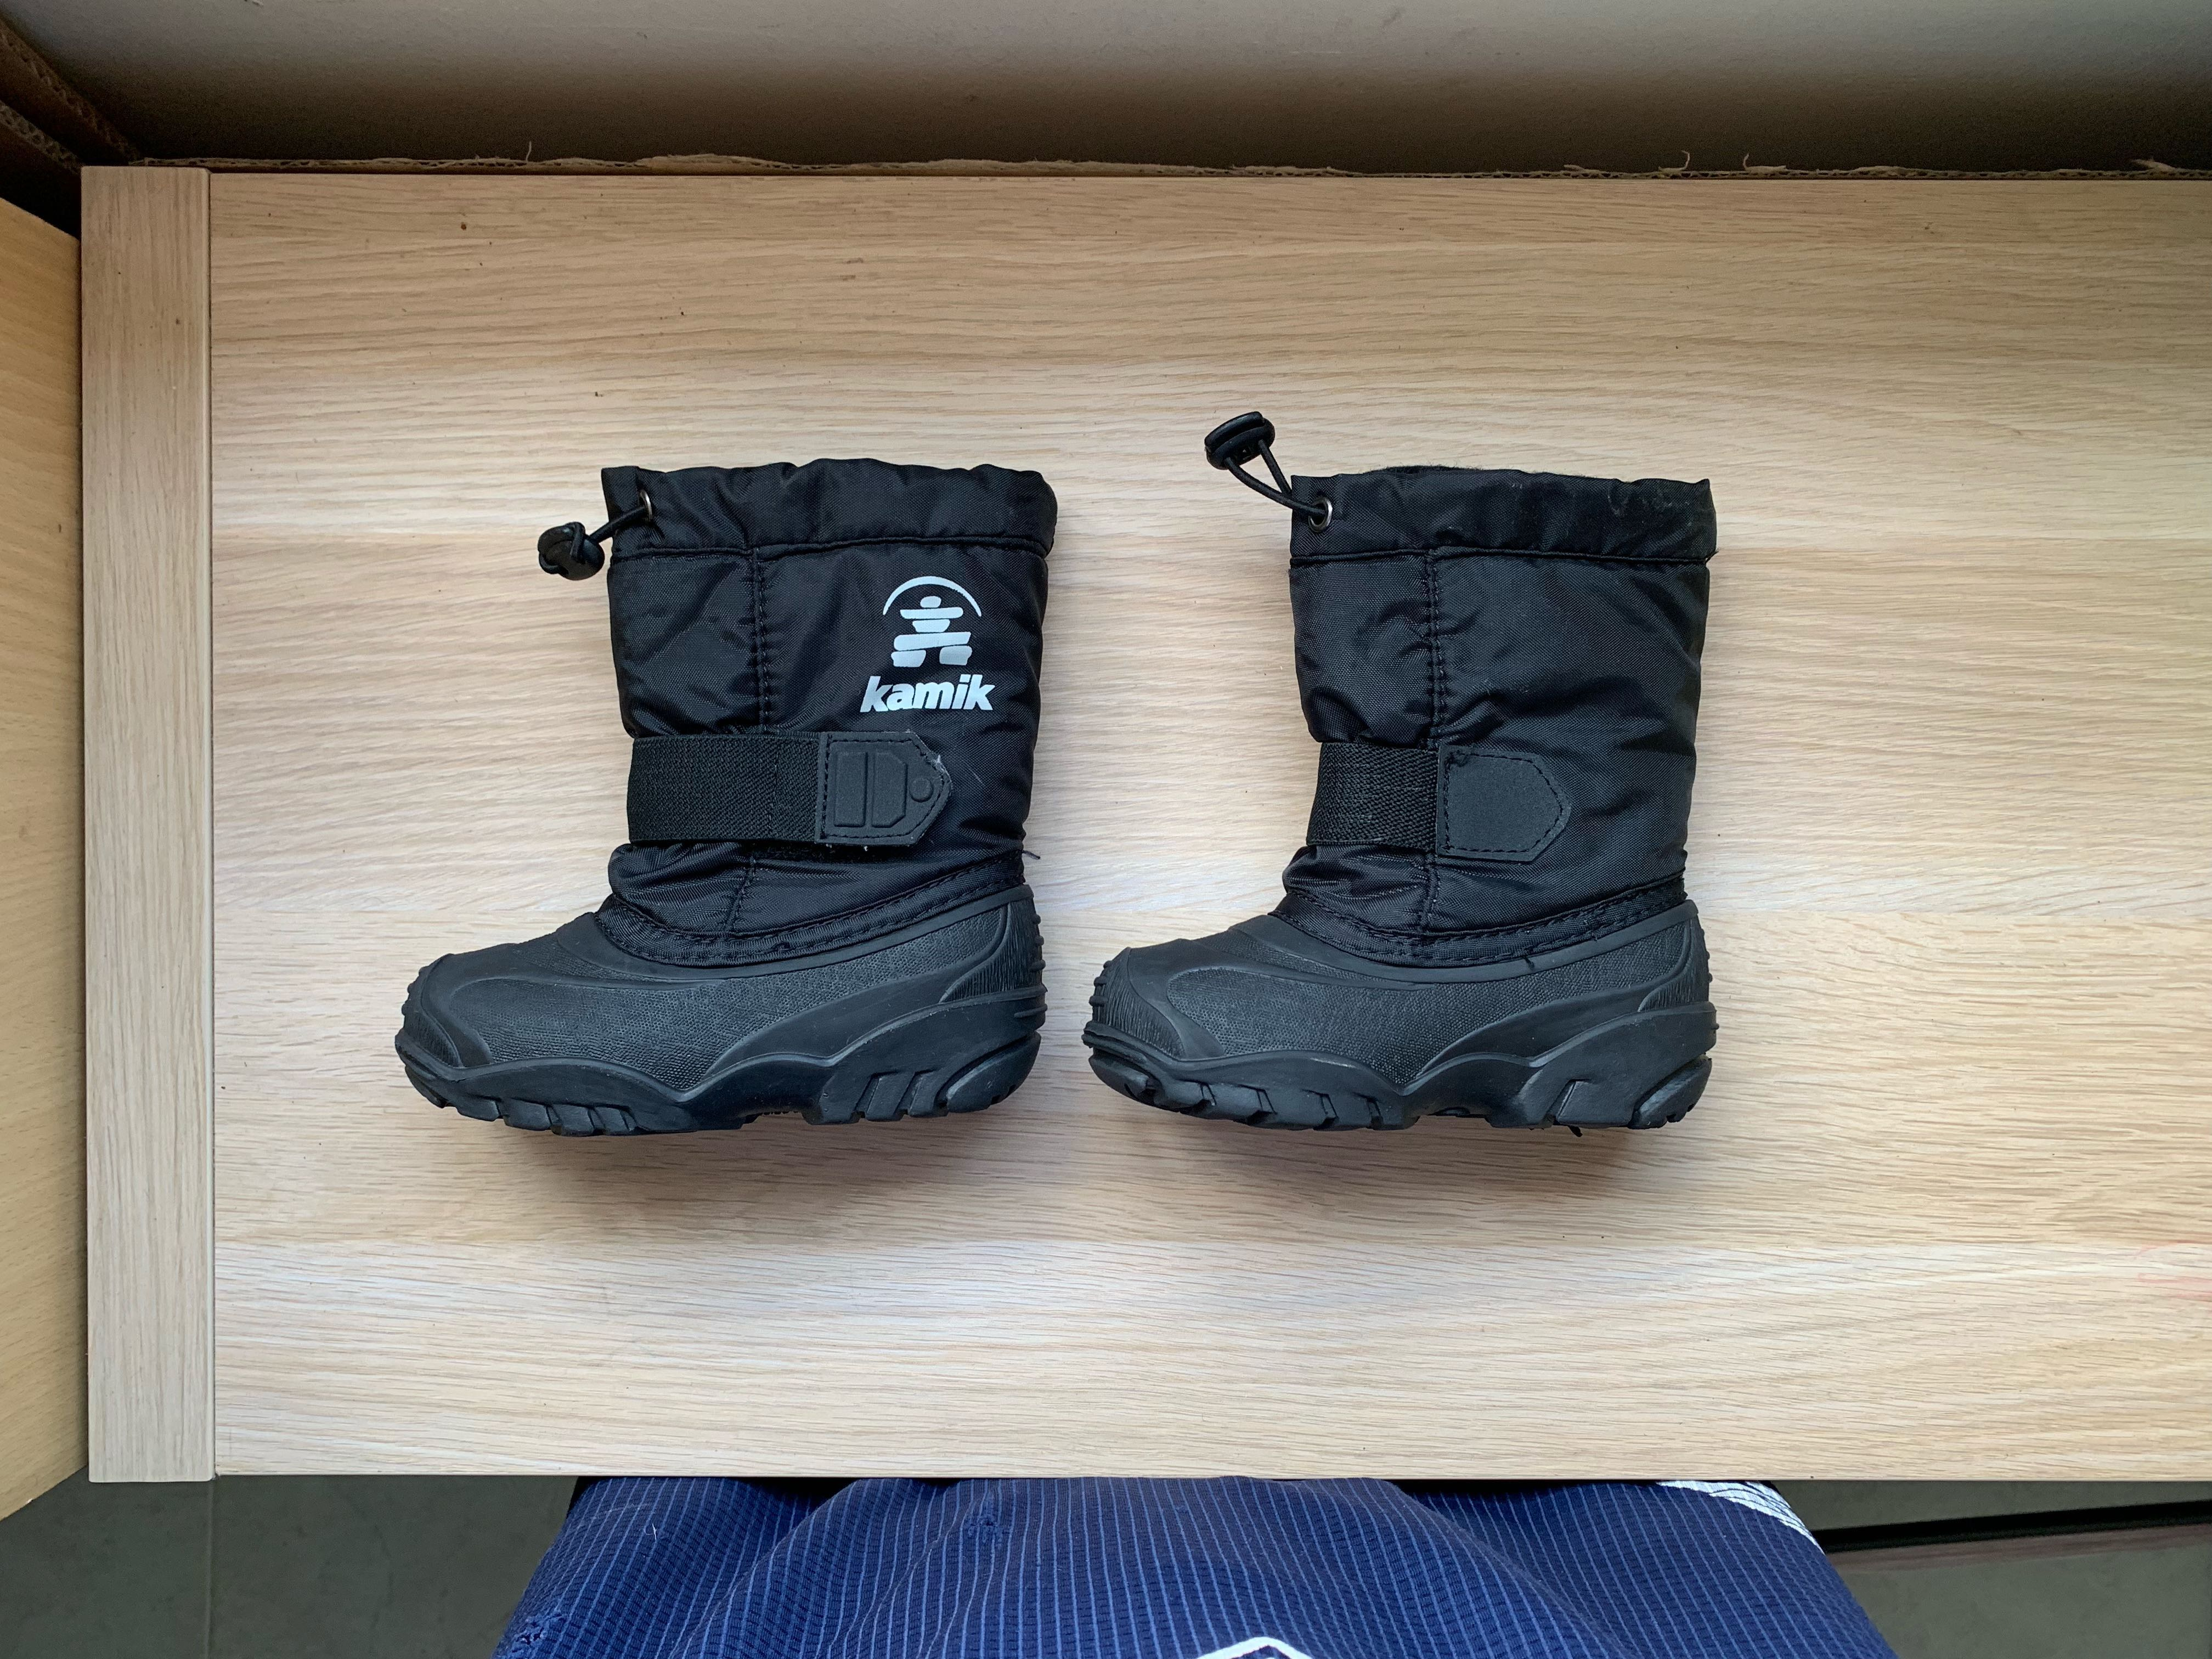 4525483ad904 Kids   Infant Winter Boots (Kamik)